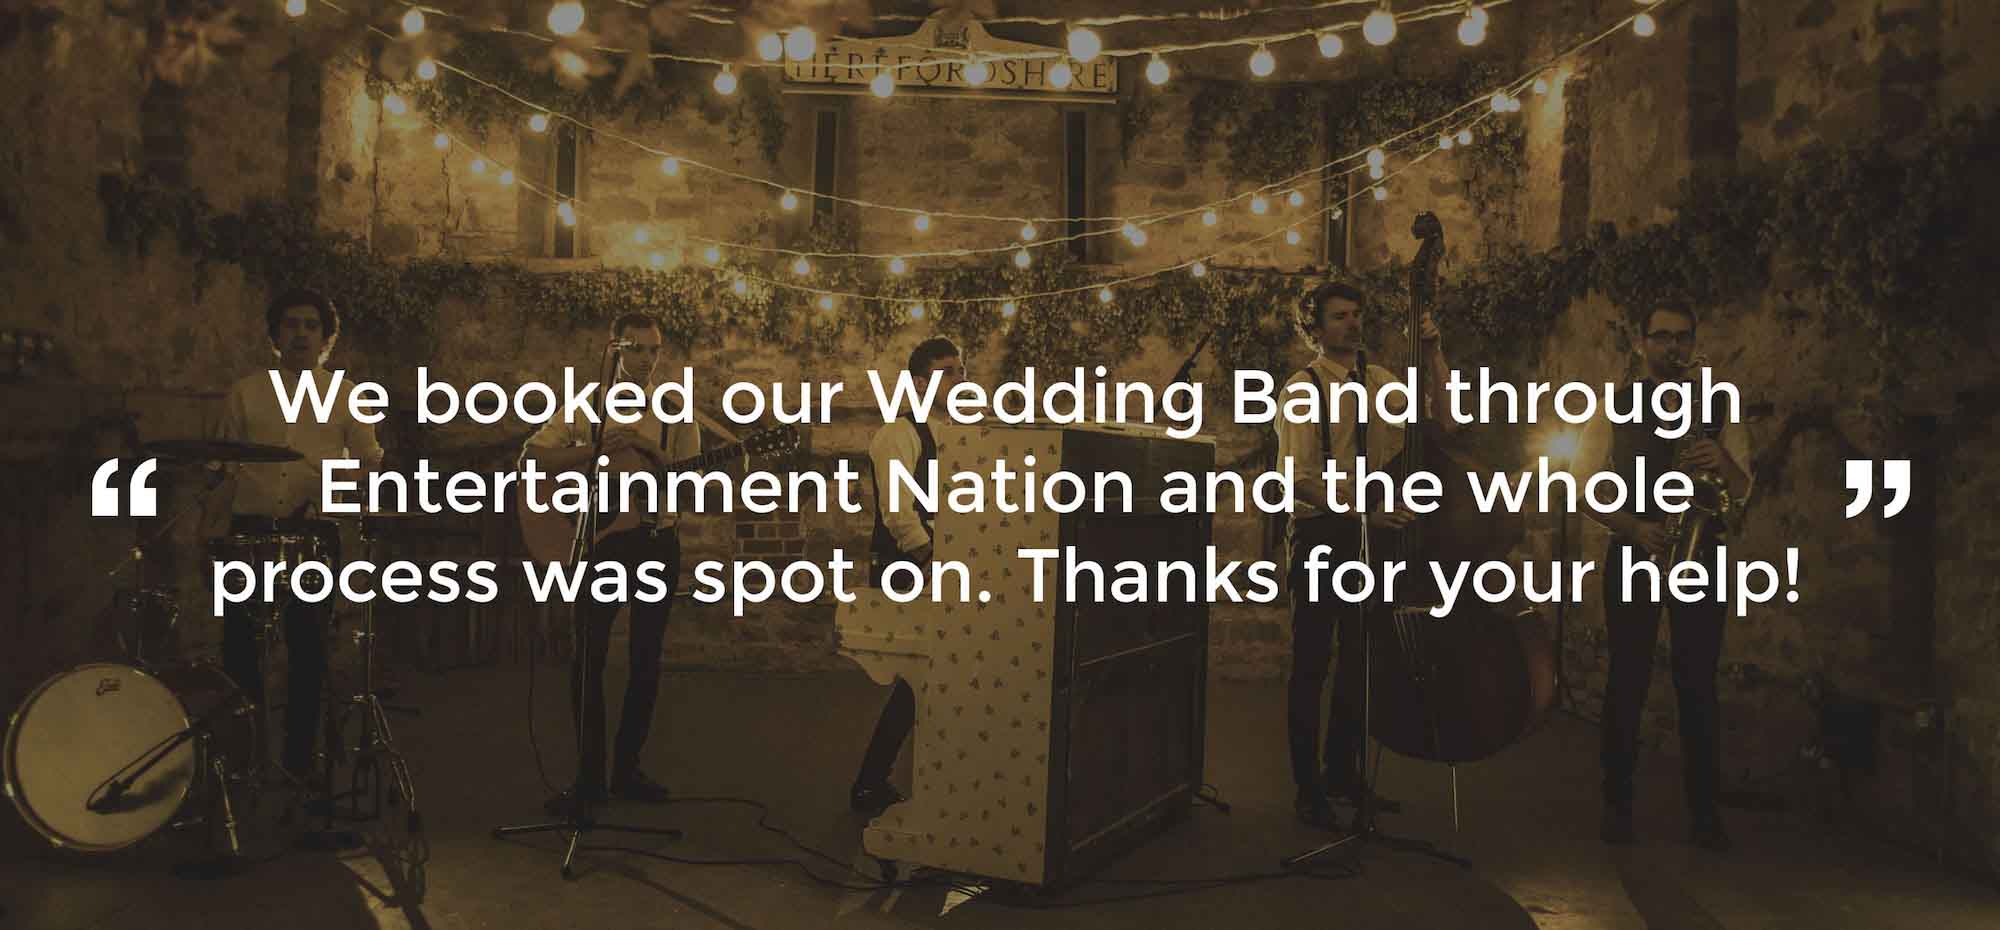 Client Review of a Wedding Band Carmarthenshire